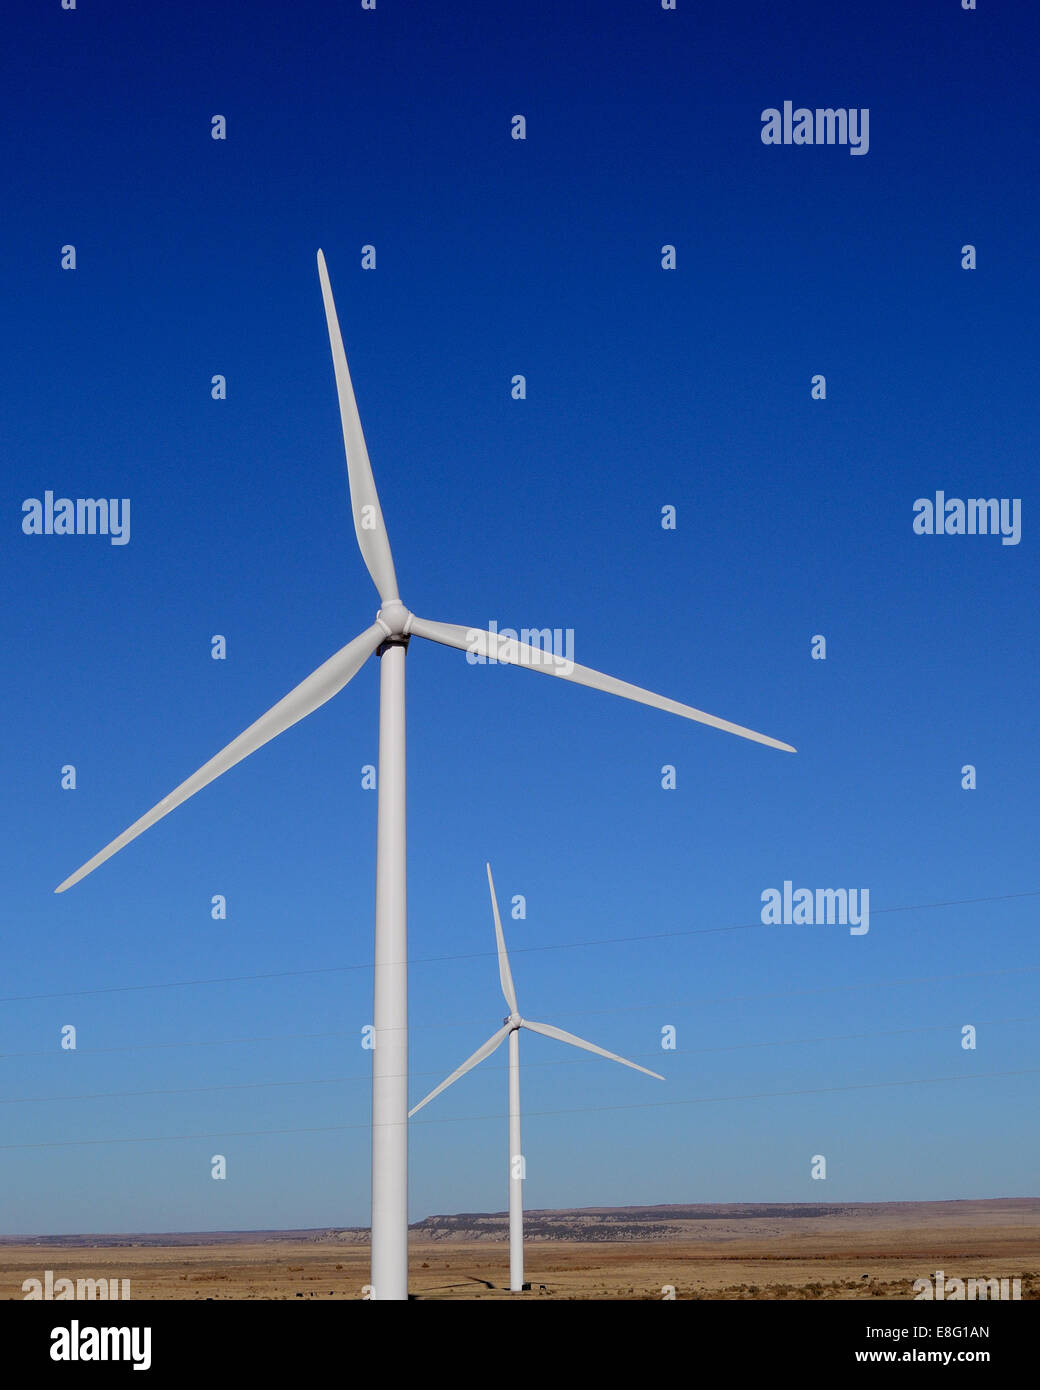 Two wind-powered turbines operating in-sync. - Stock Image